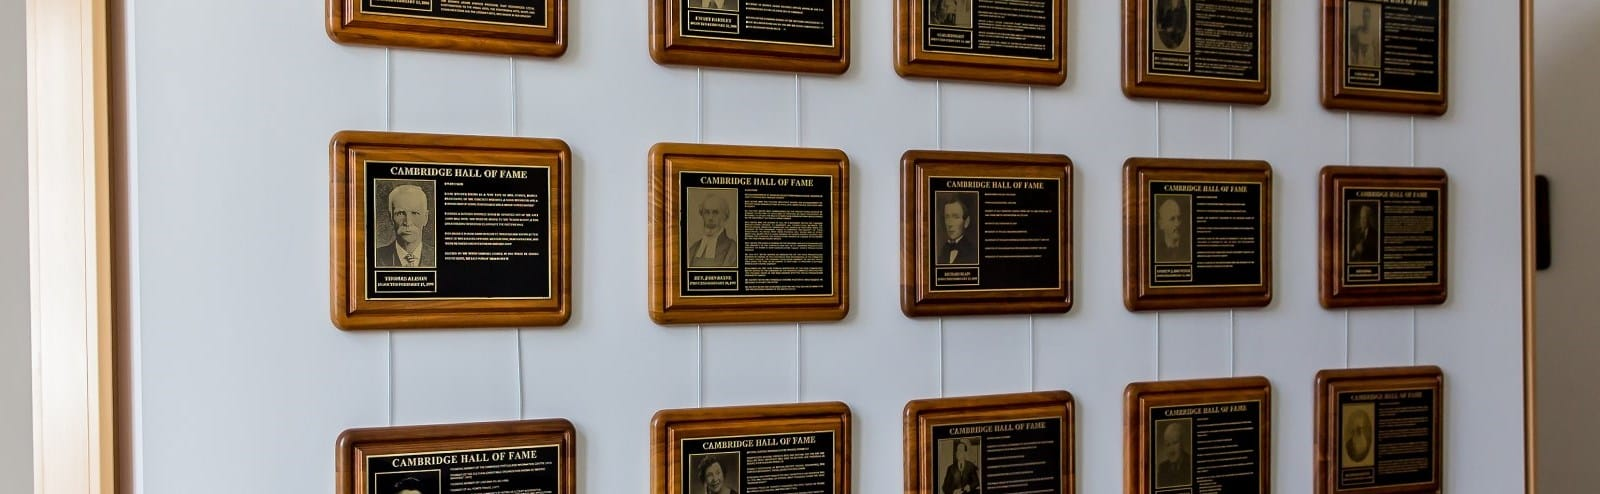 Cambridge Hall of Fame